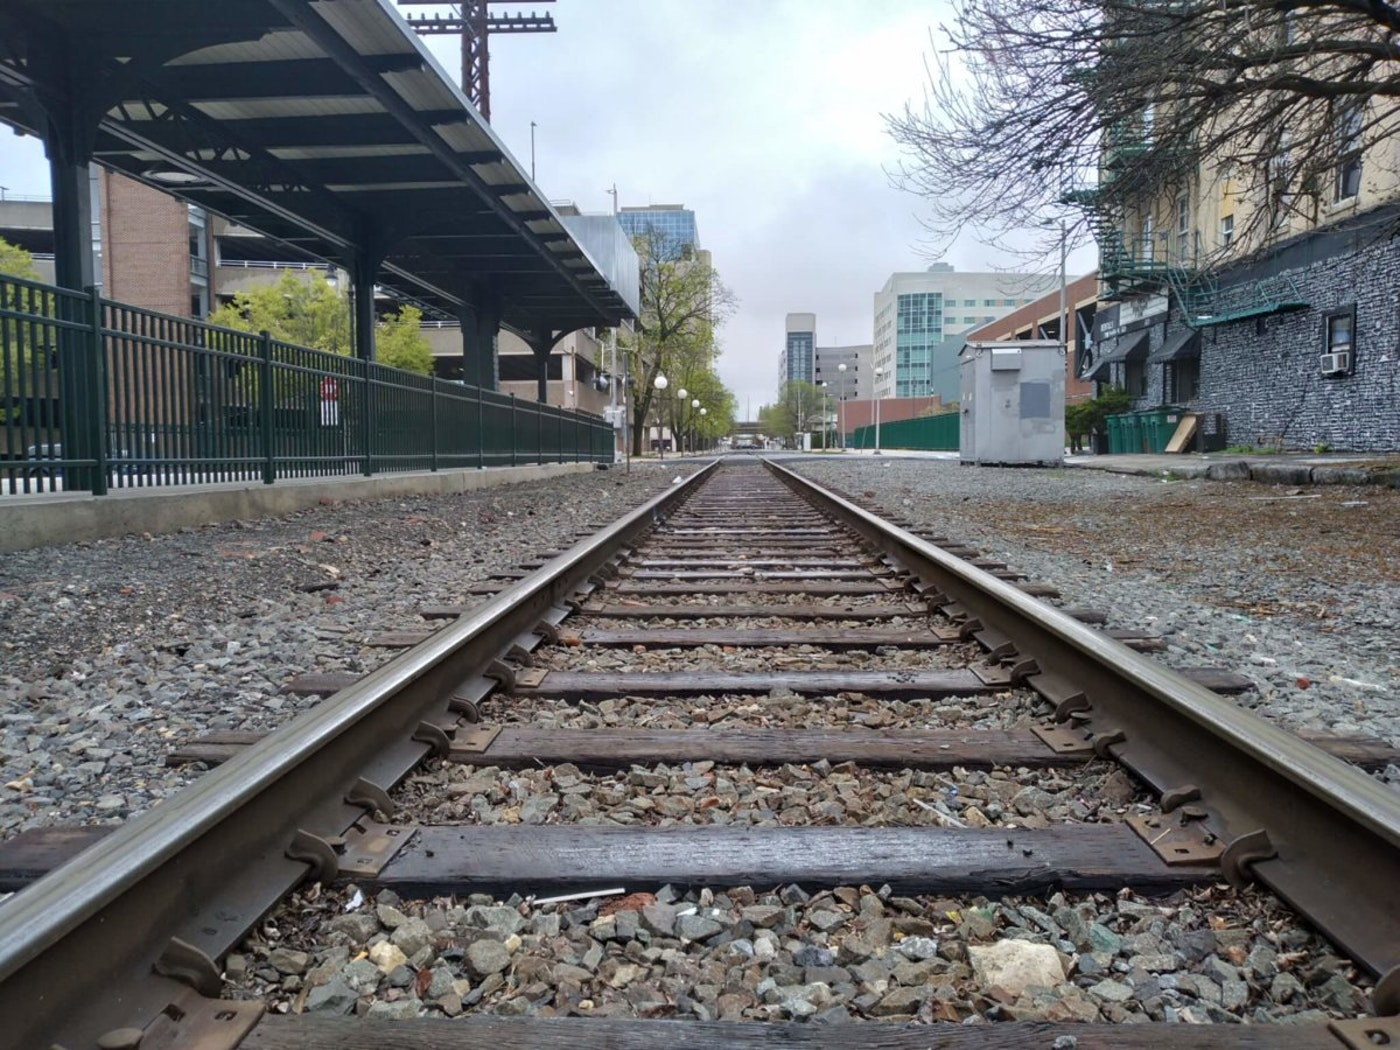 These railroad tracks could be getting more use if Amtrak's plan goes through.